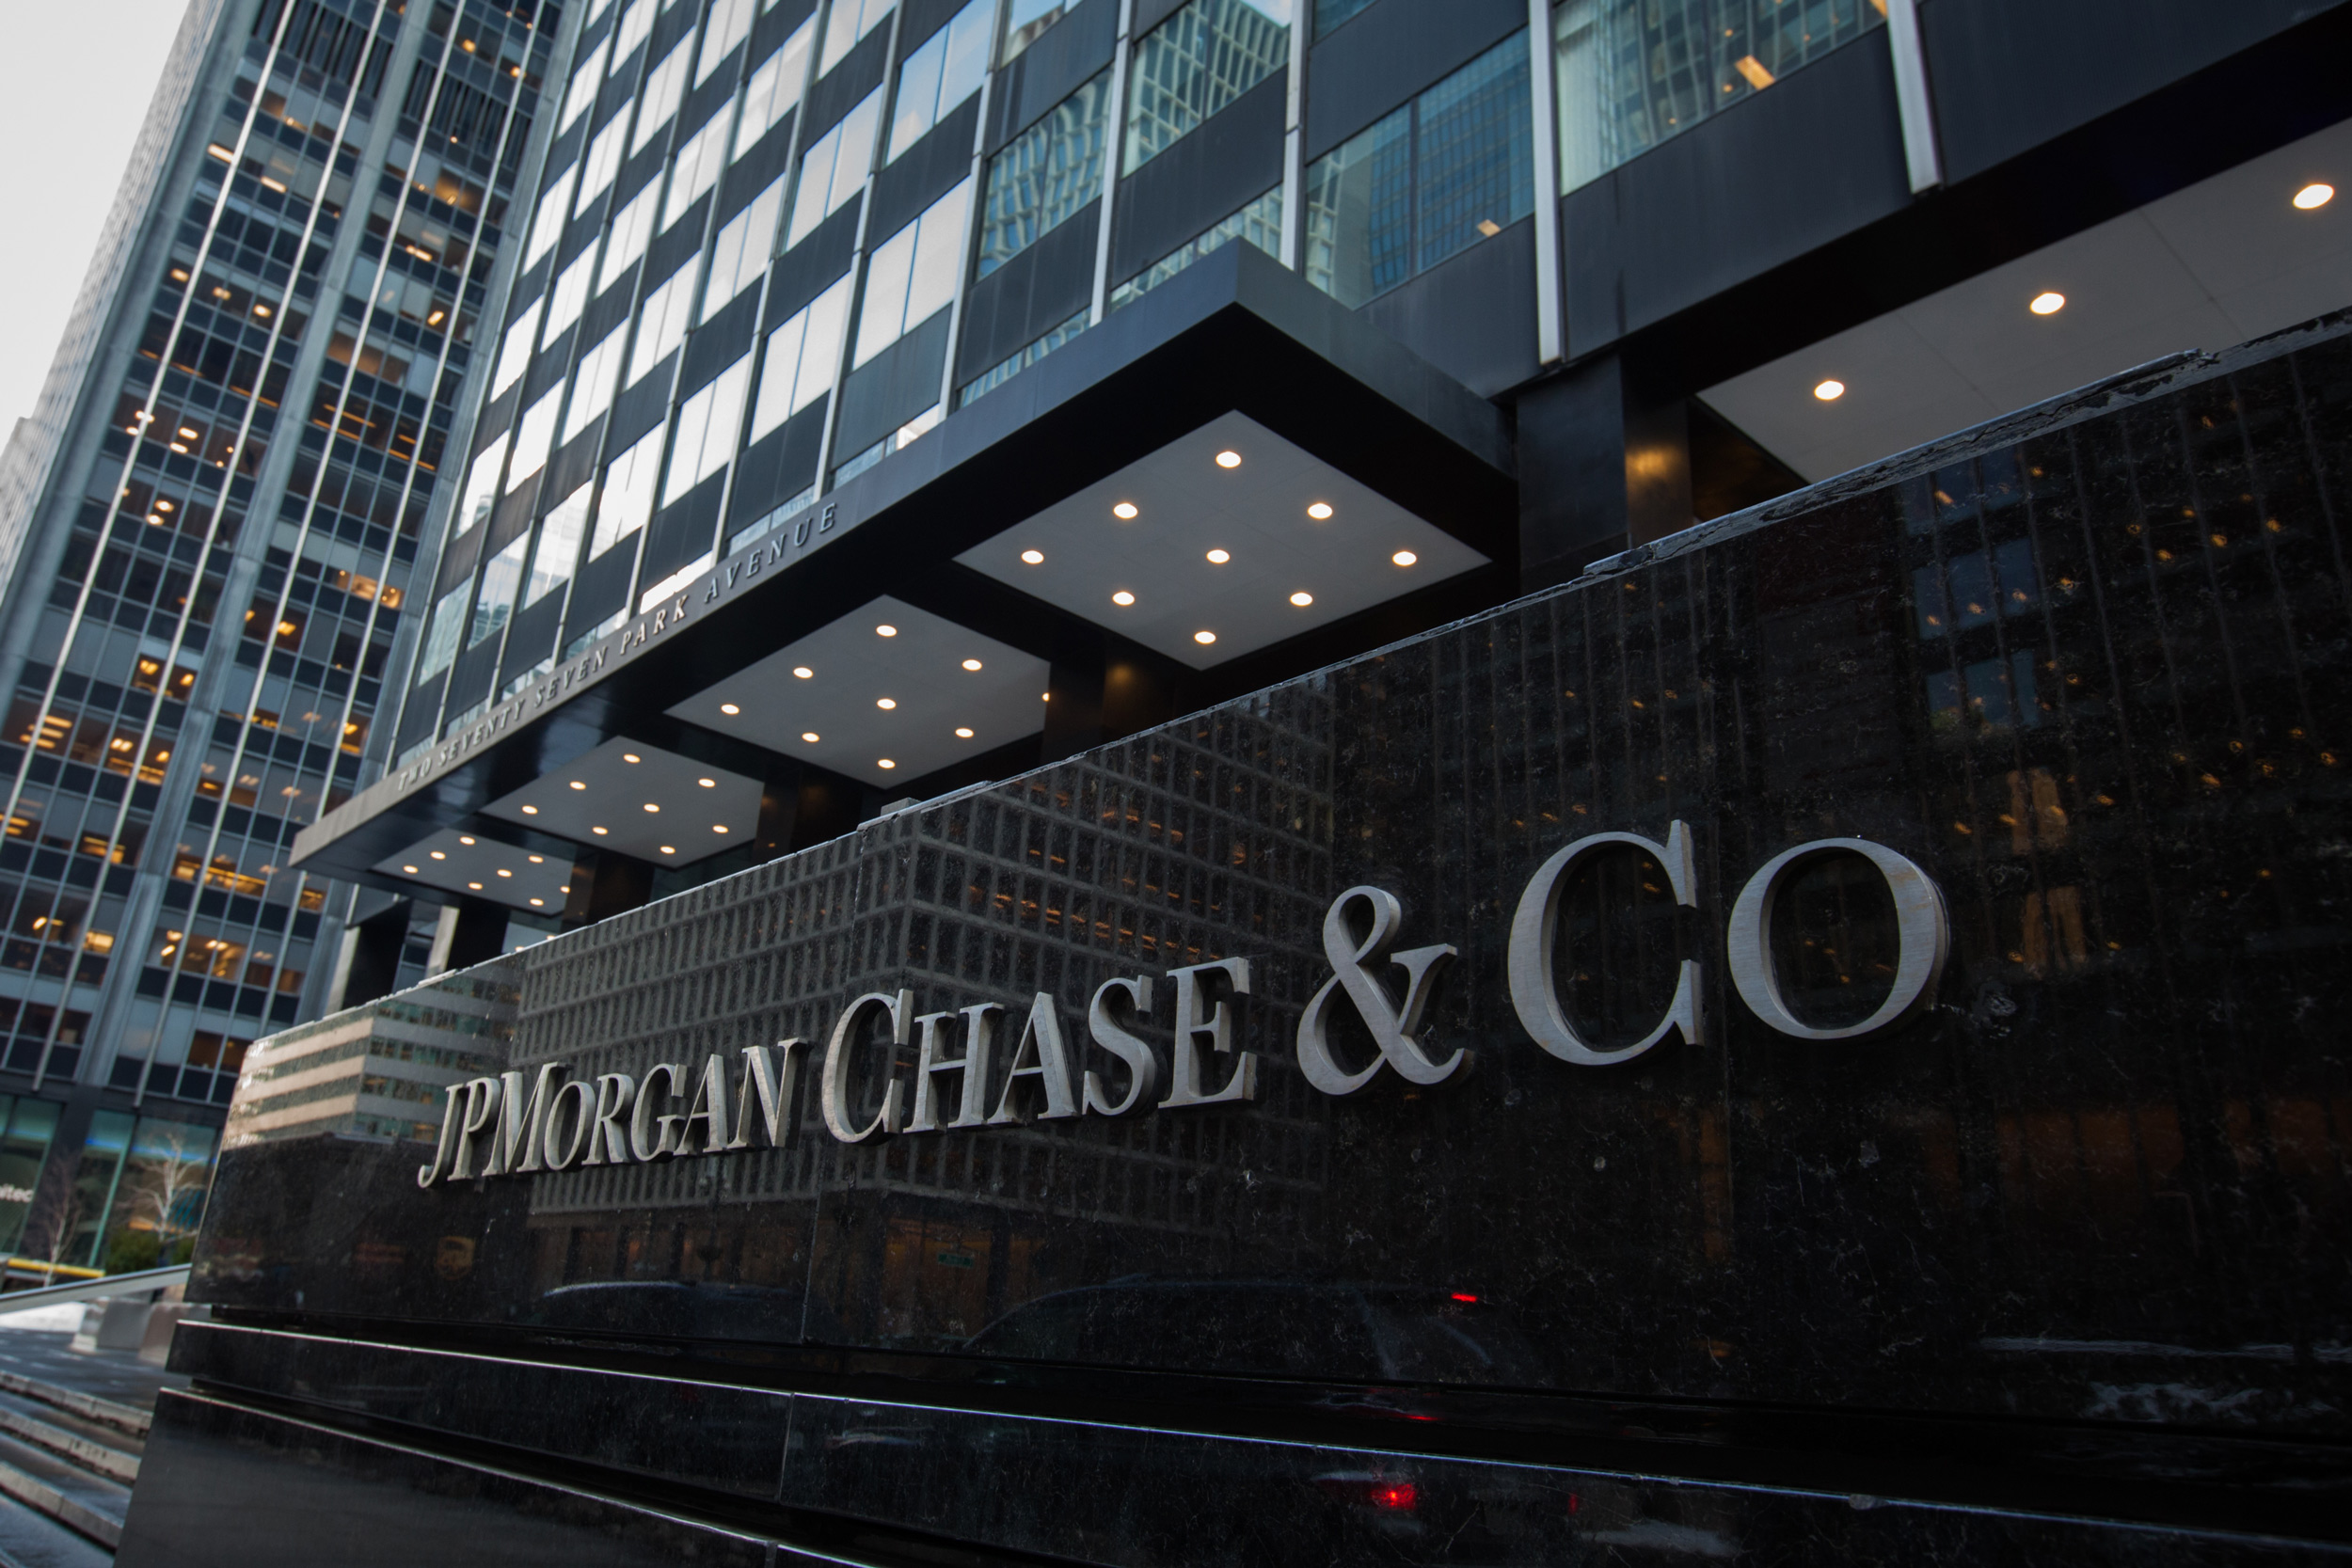 Signage is displayed outside a JPMorgan Chase & Co. office building in New York, on January 9, 2018.